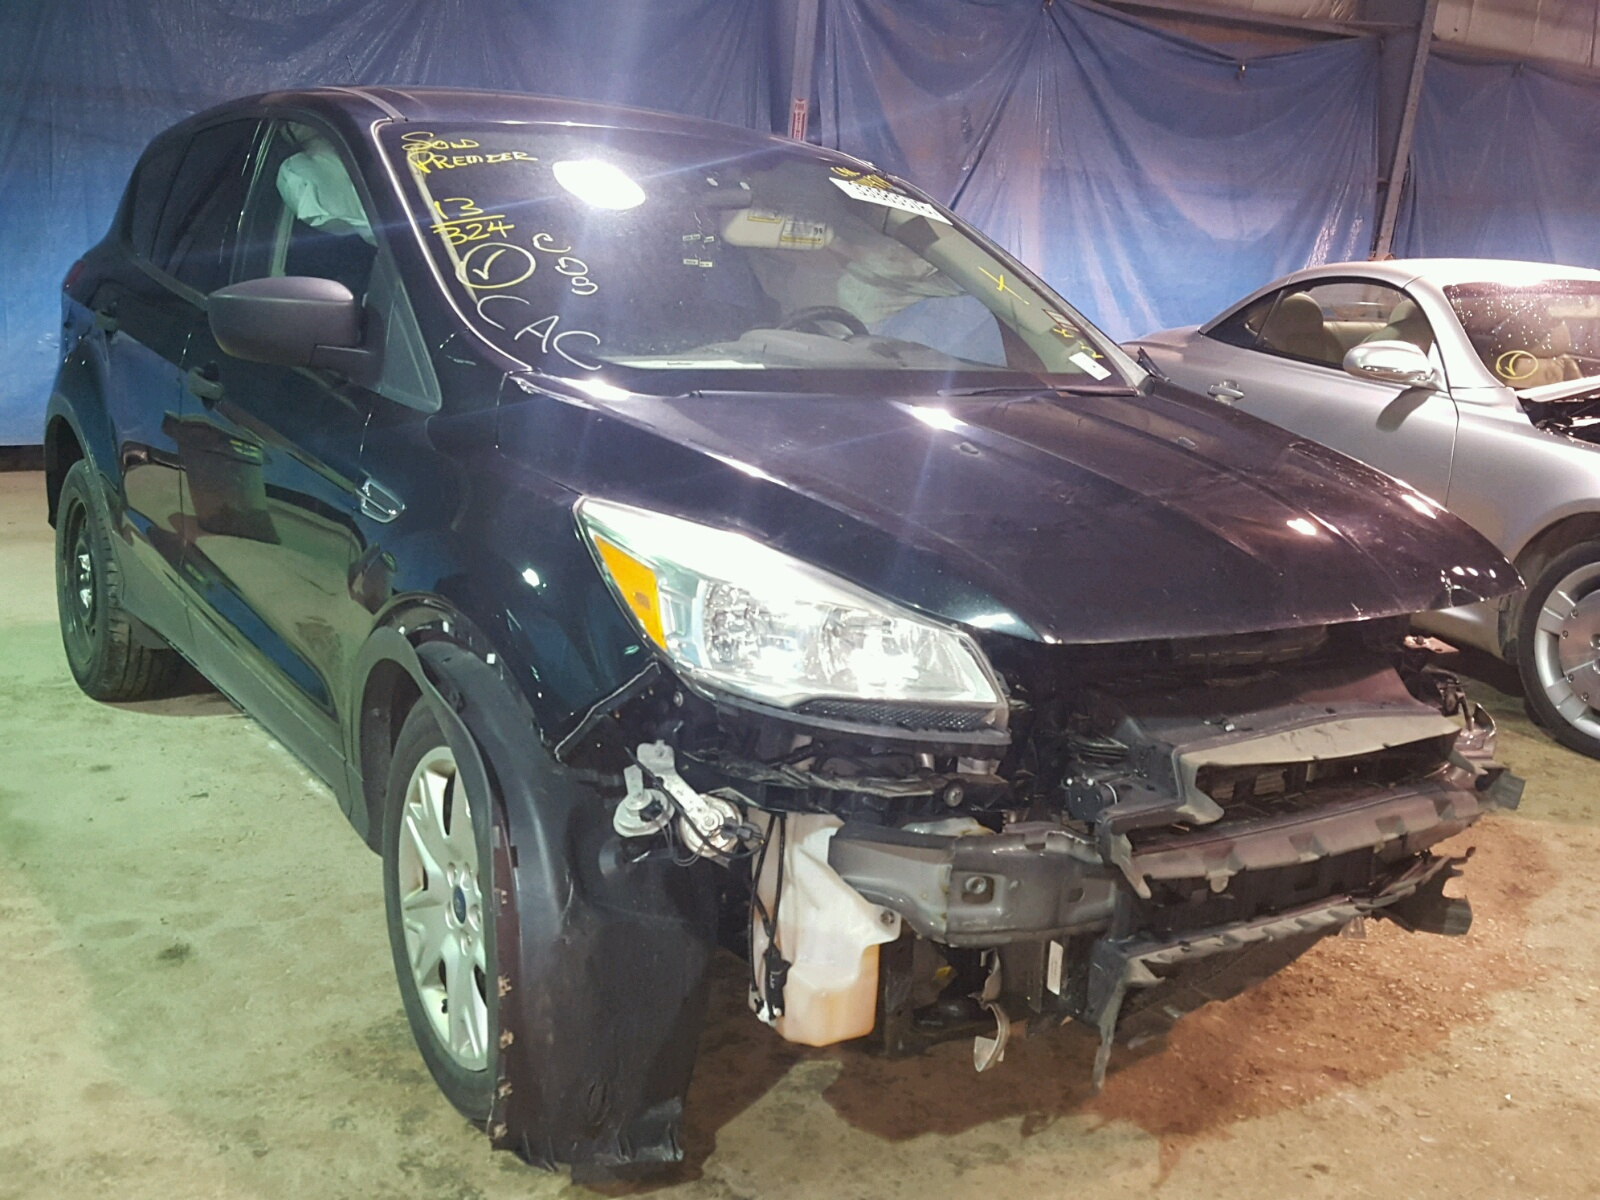 1fmcu0f78dua20528 2013 ford escape s 2 5l left view 1fmcu0f78dua20528